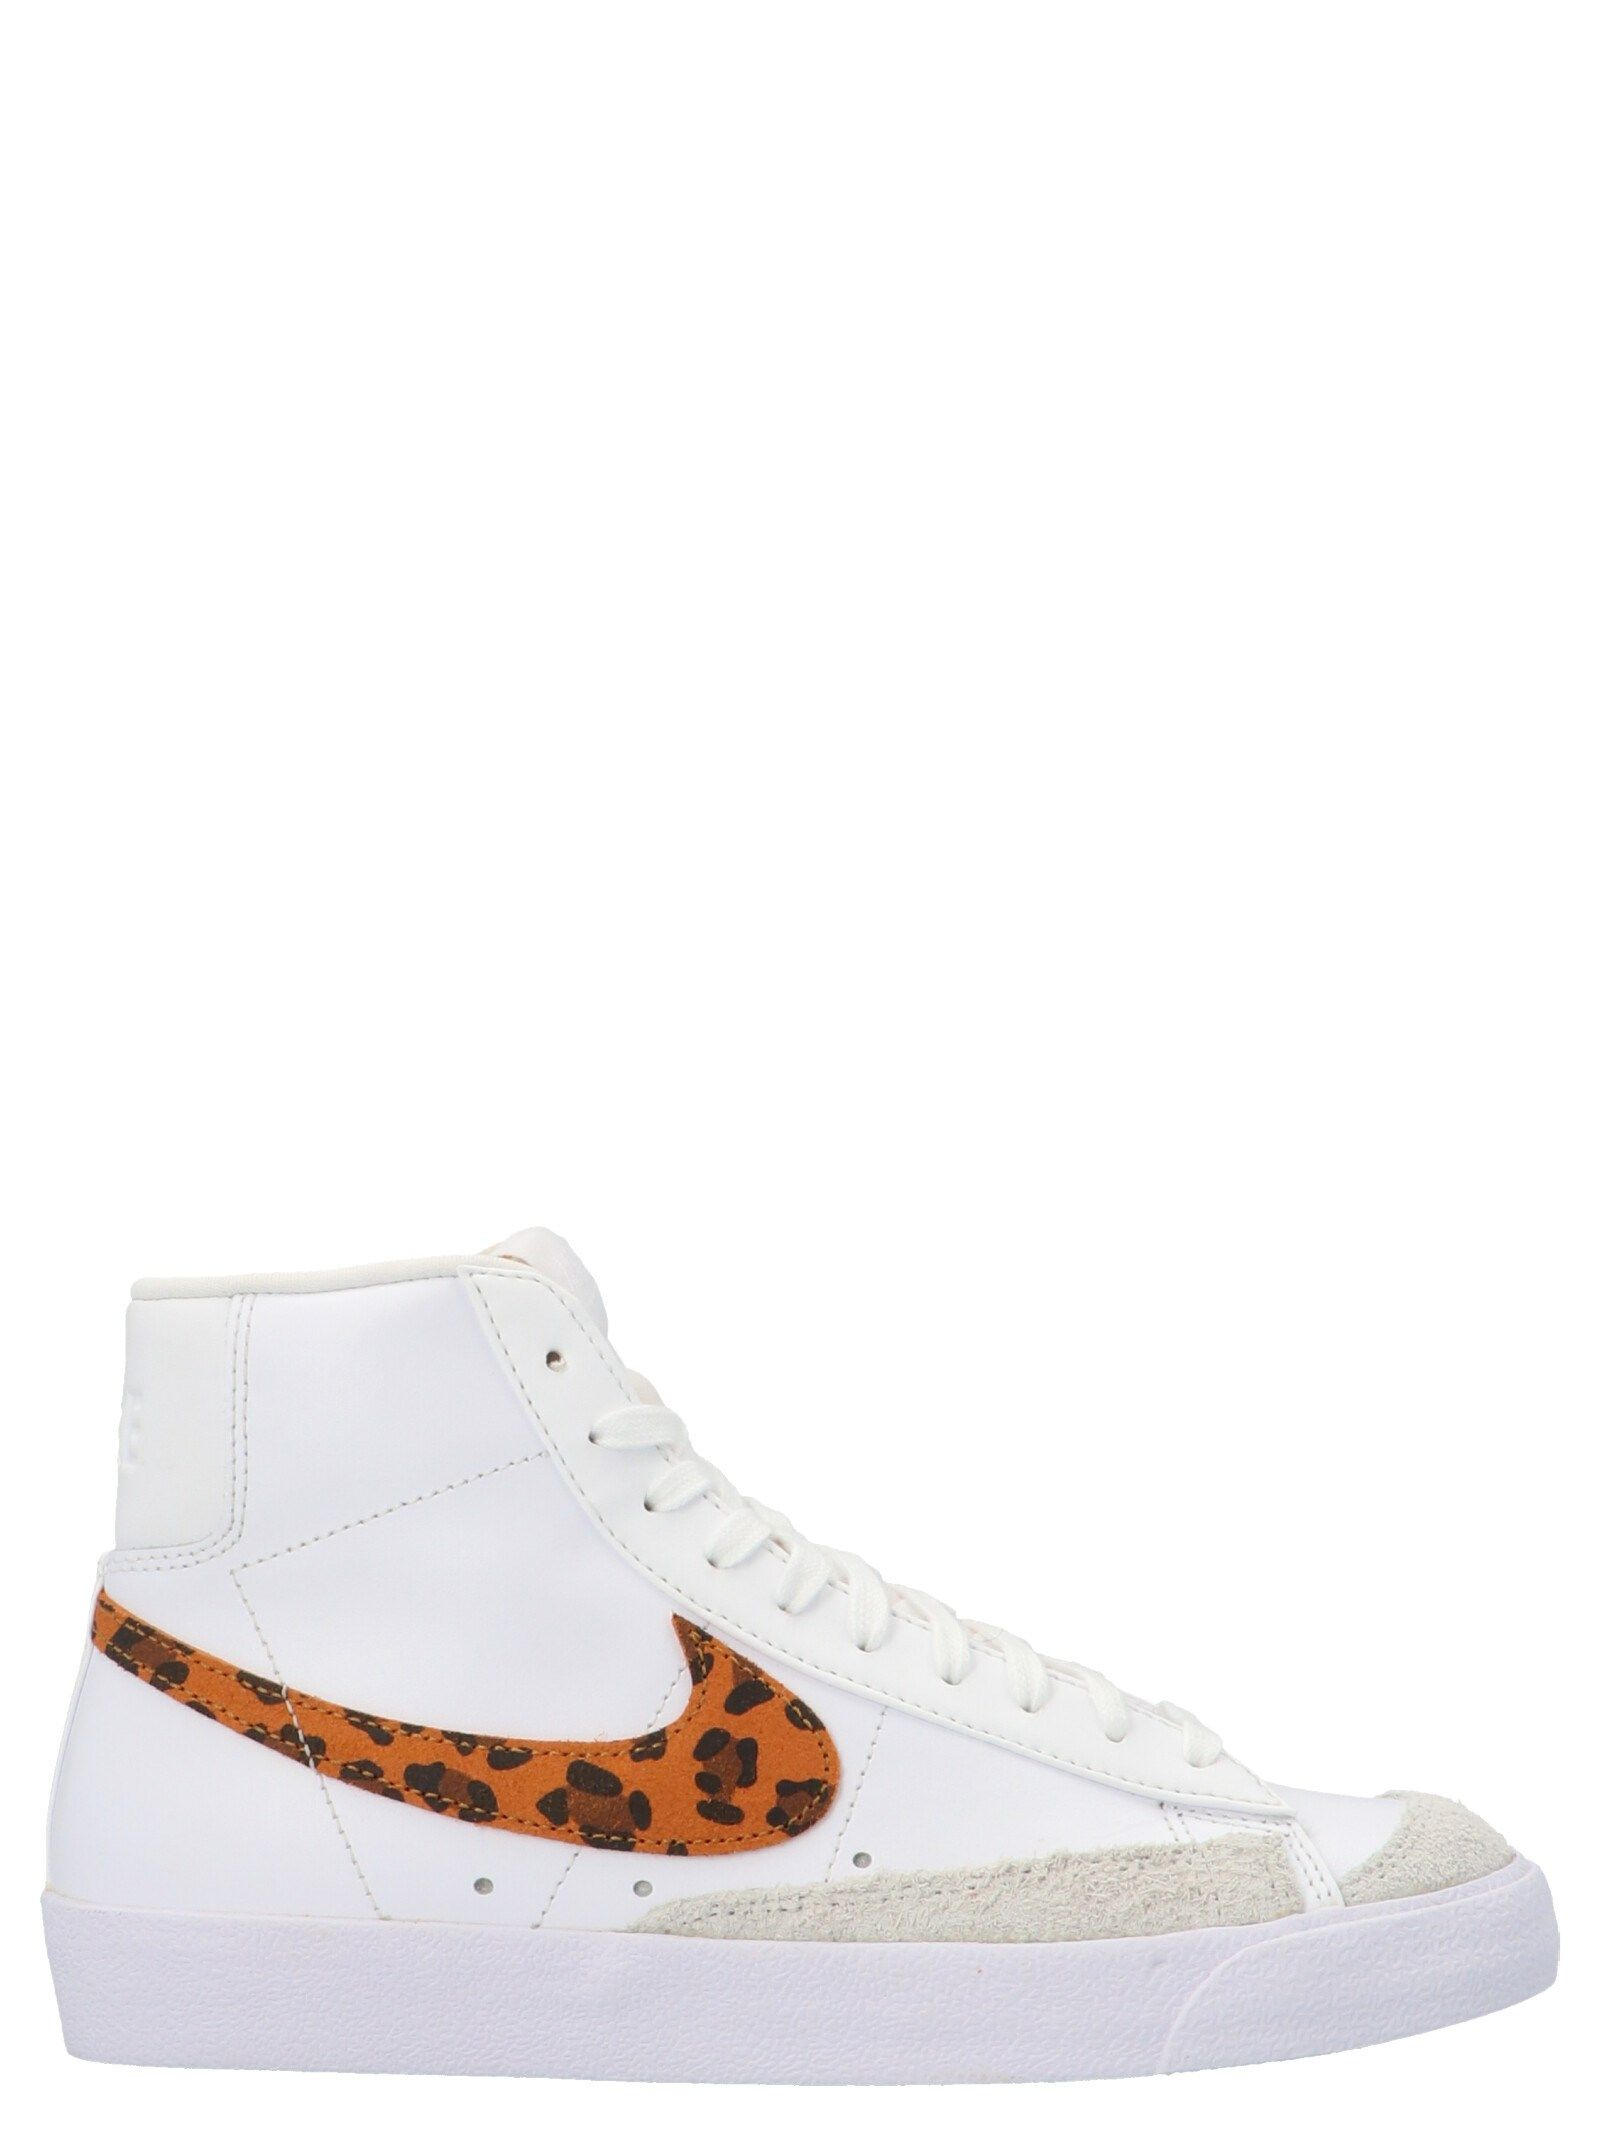 Nike Sneakers NIKE WOMEN'S DA8736101 WHITE OTHER MATERIALS SNEAKERS